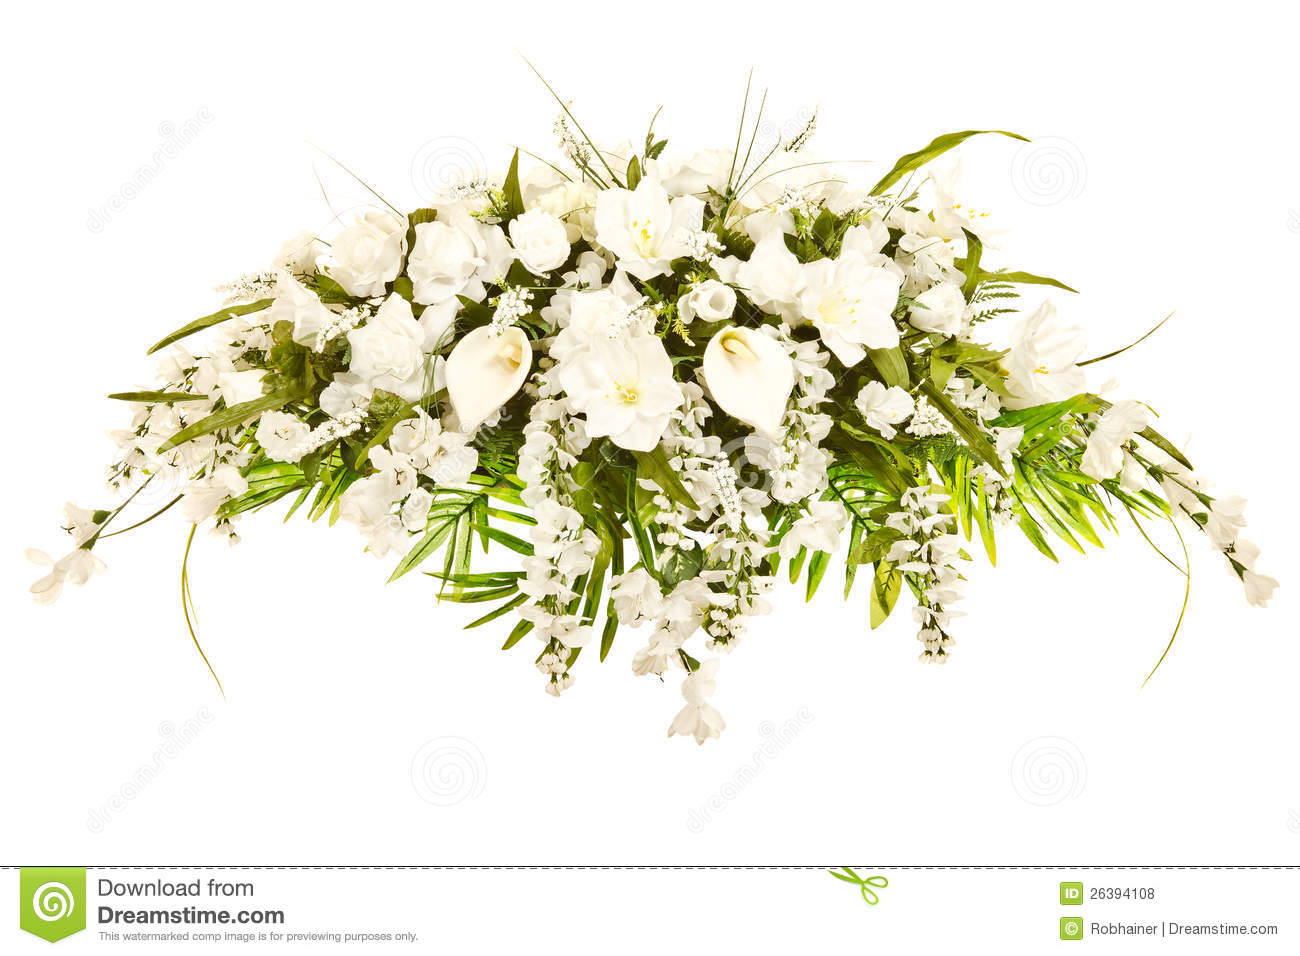 Silk casket cover funeral floral arrangement stock photo image of download silk casket cover funeral floral arrangement stock photo image of background carnations izmirmasajfo